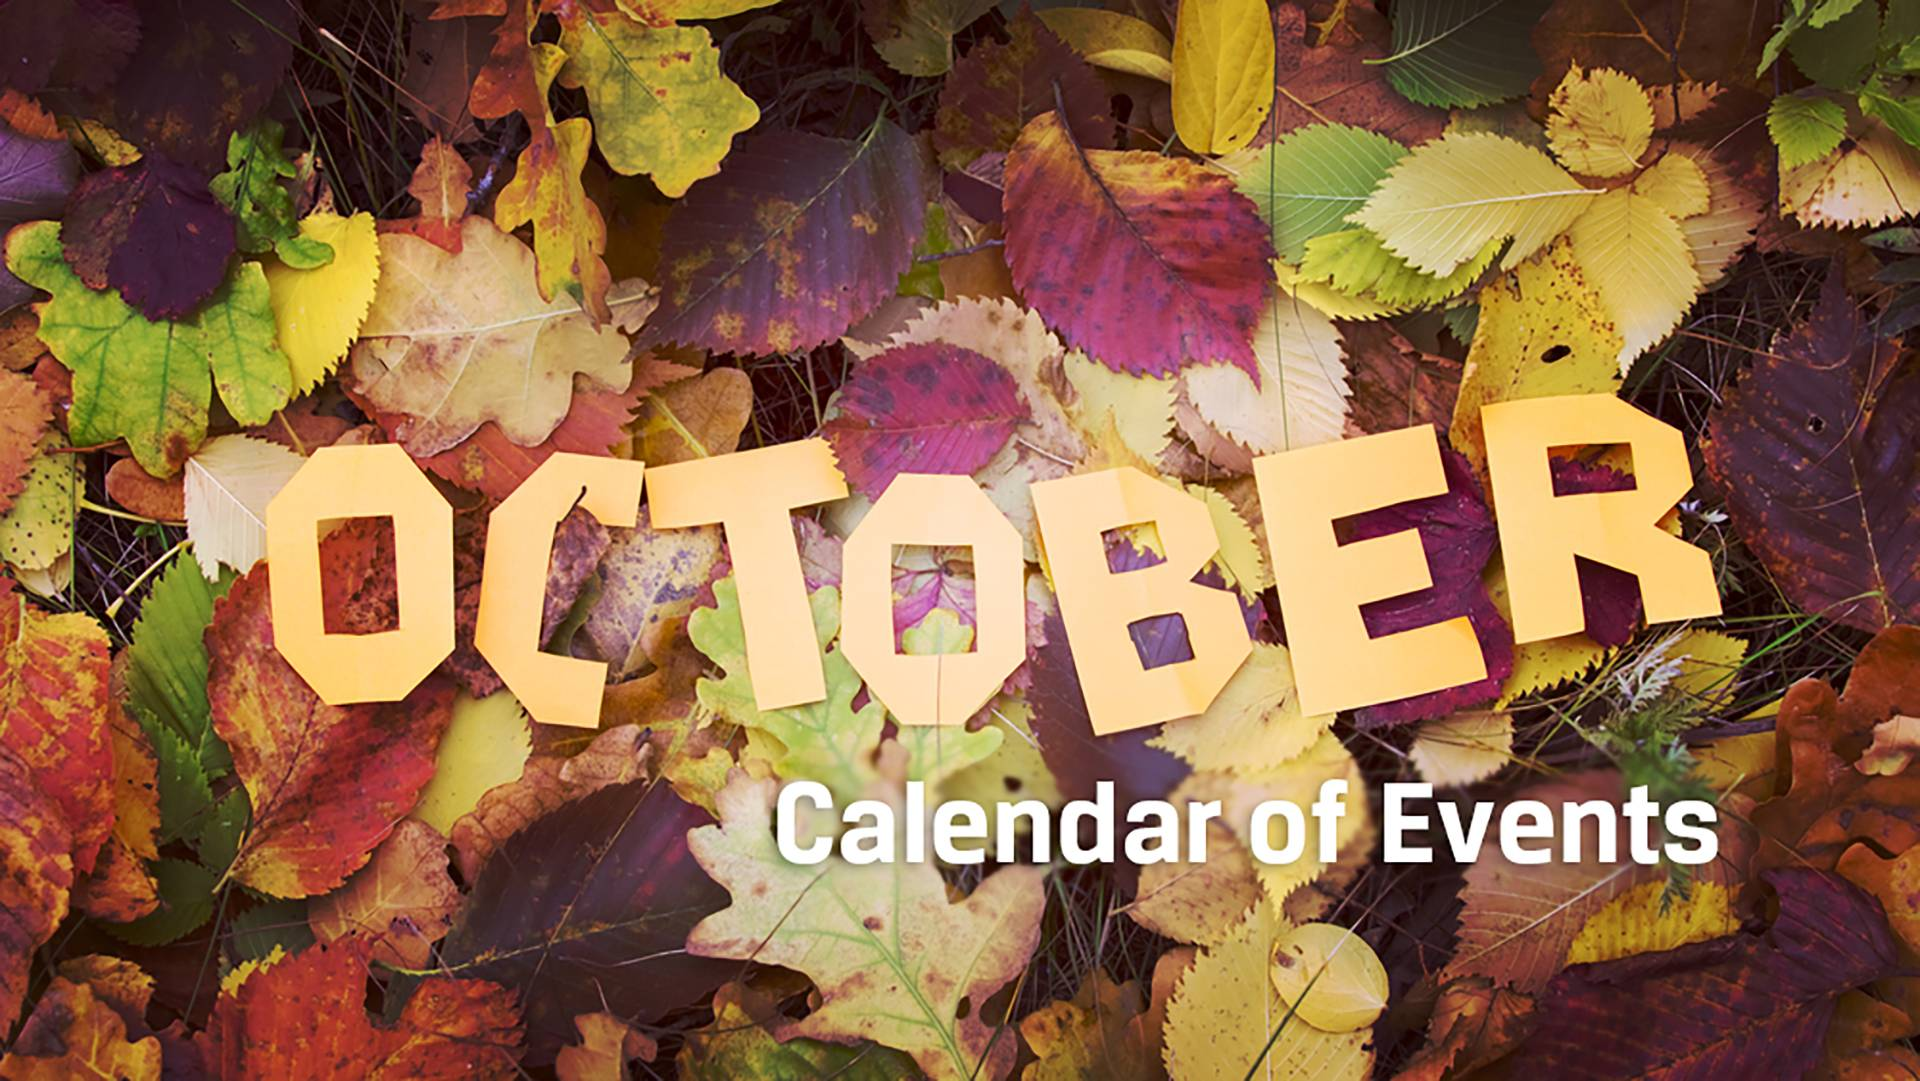 october entertainment calendar: comprehensive guide to halloween